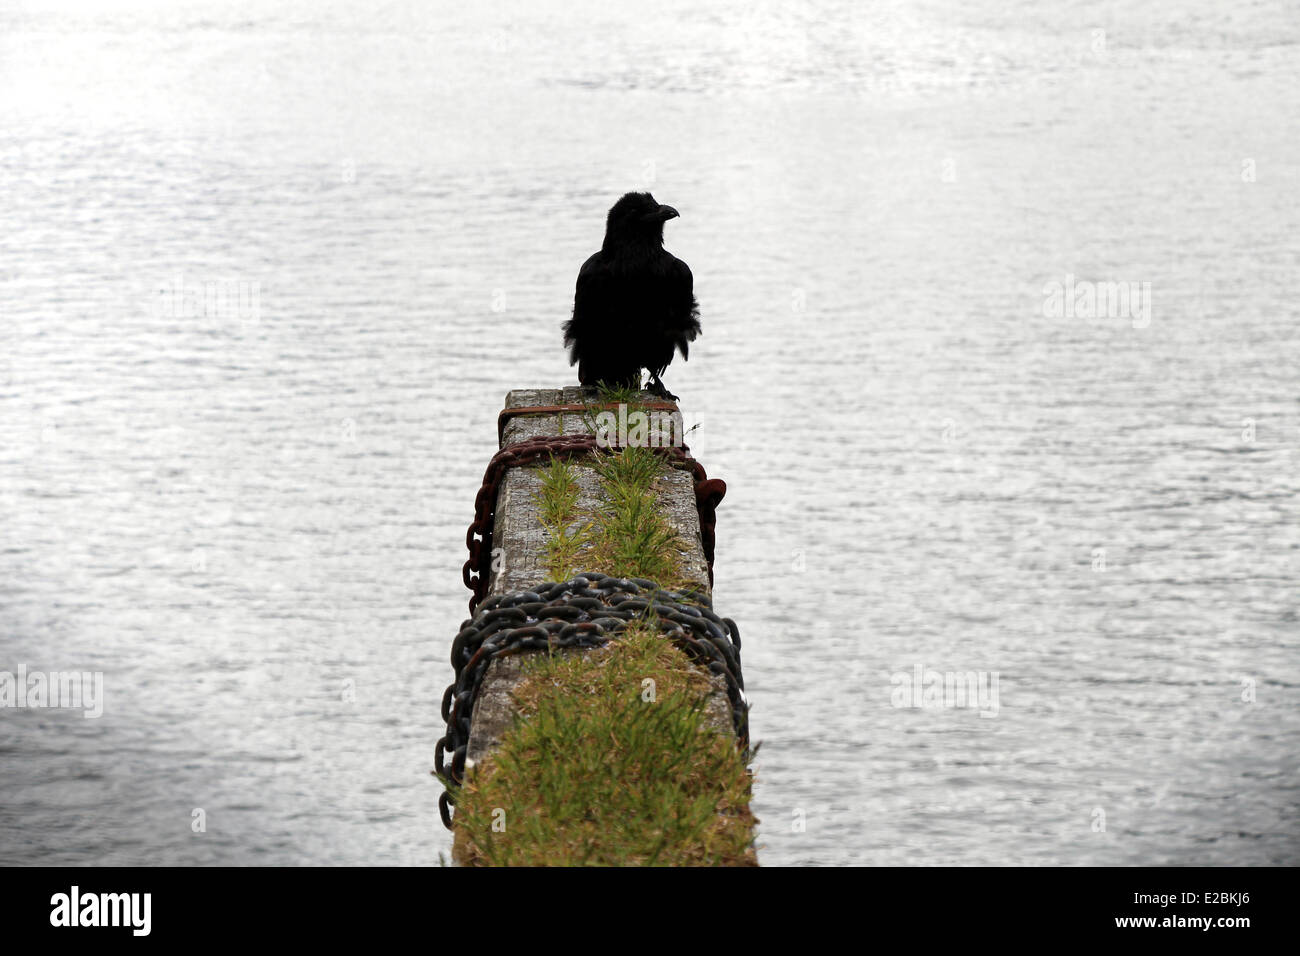 Black Raven on a grass covered wood pier dock, wrapped in chains.  Juneau Alaska - Stock Image